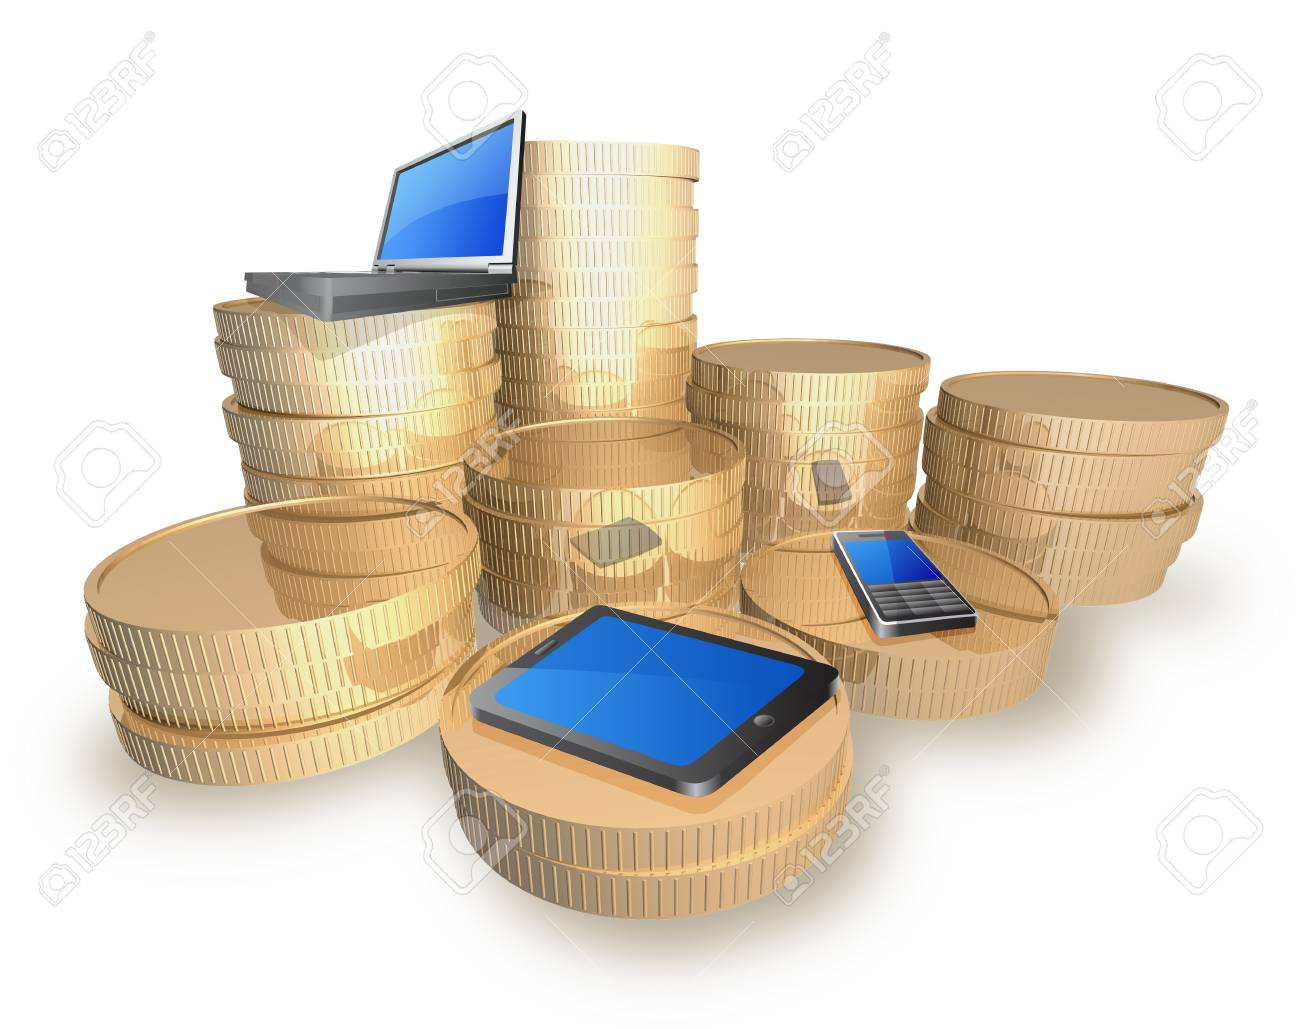 Gold coins and devices are on white background. Stock Photo - 14958780